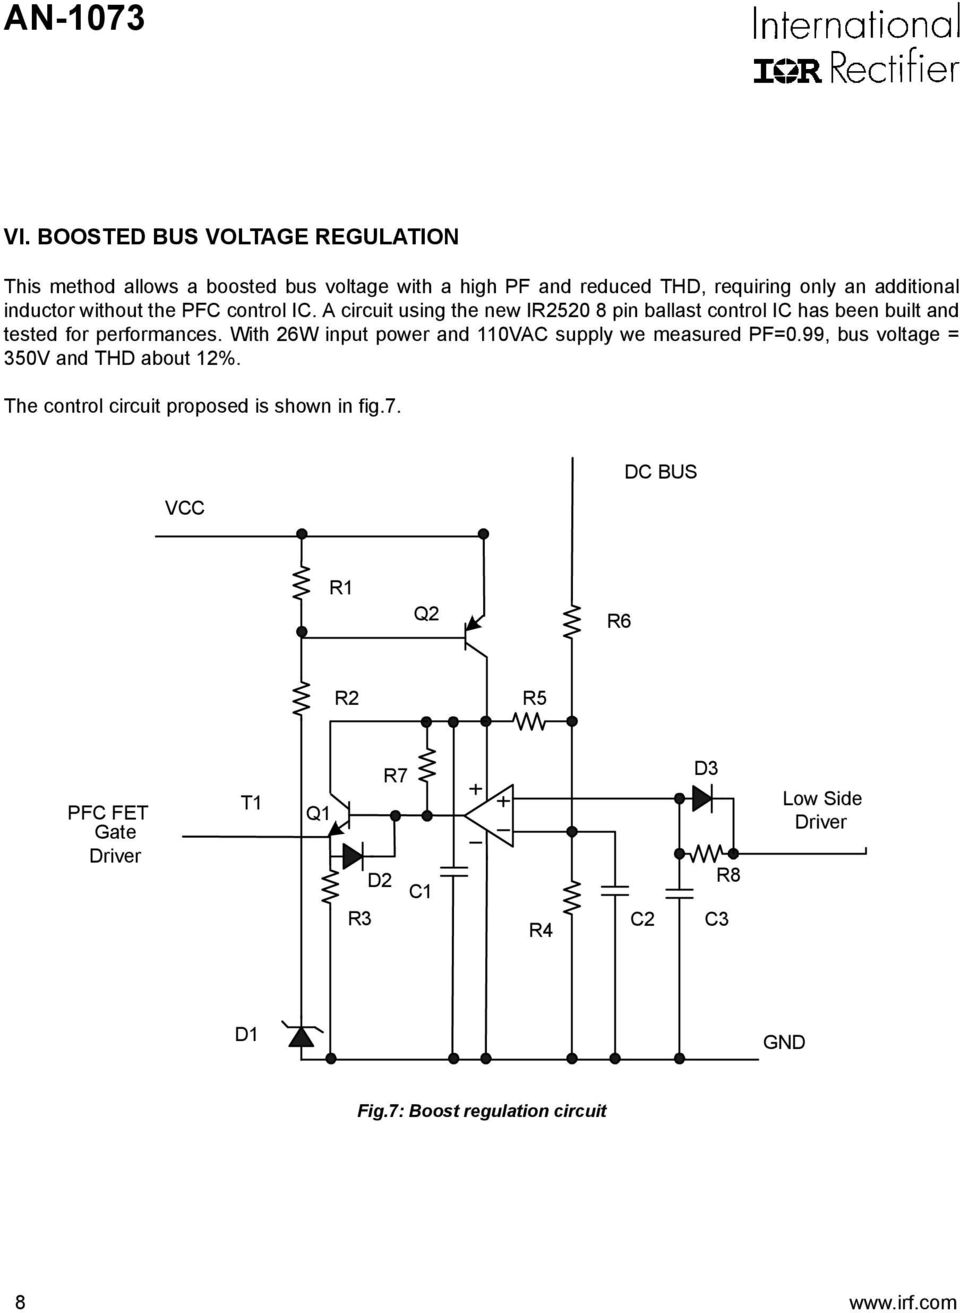 Application Note An Pdf 48v 2a Voltage Regulator Circuit Basiccircuit Diagram Regulation 8 With 26w Input Power And 0vac Supply We Measured Pf099 Bus